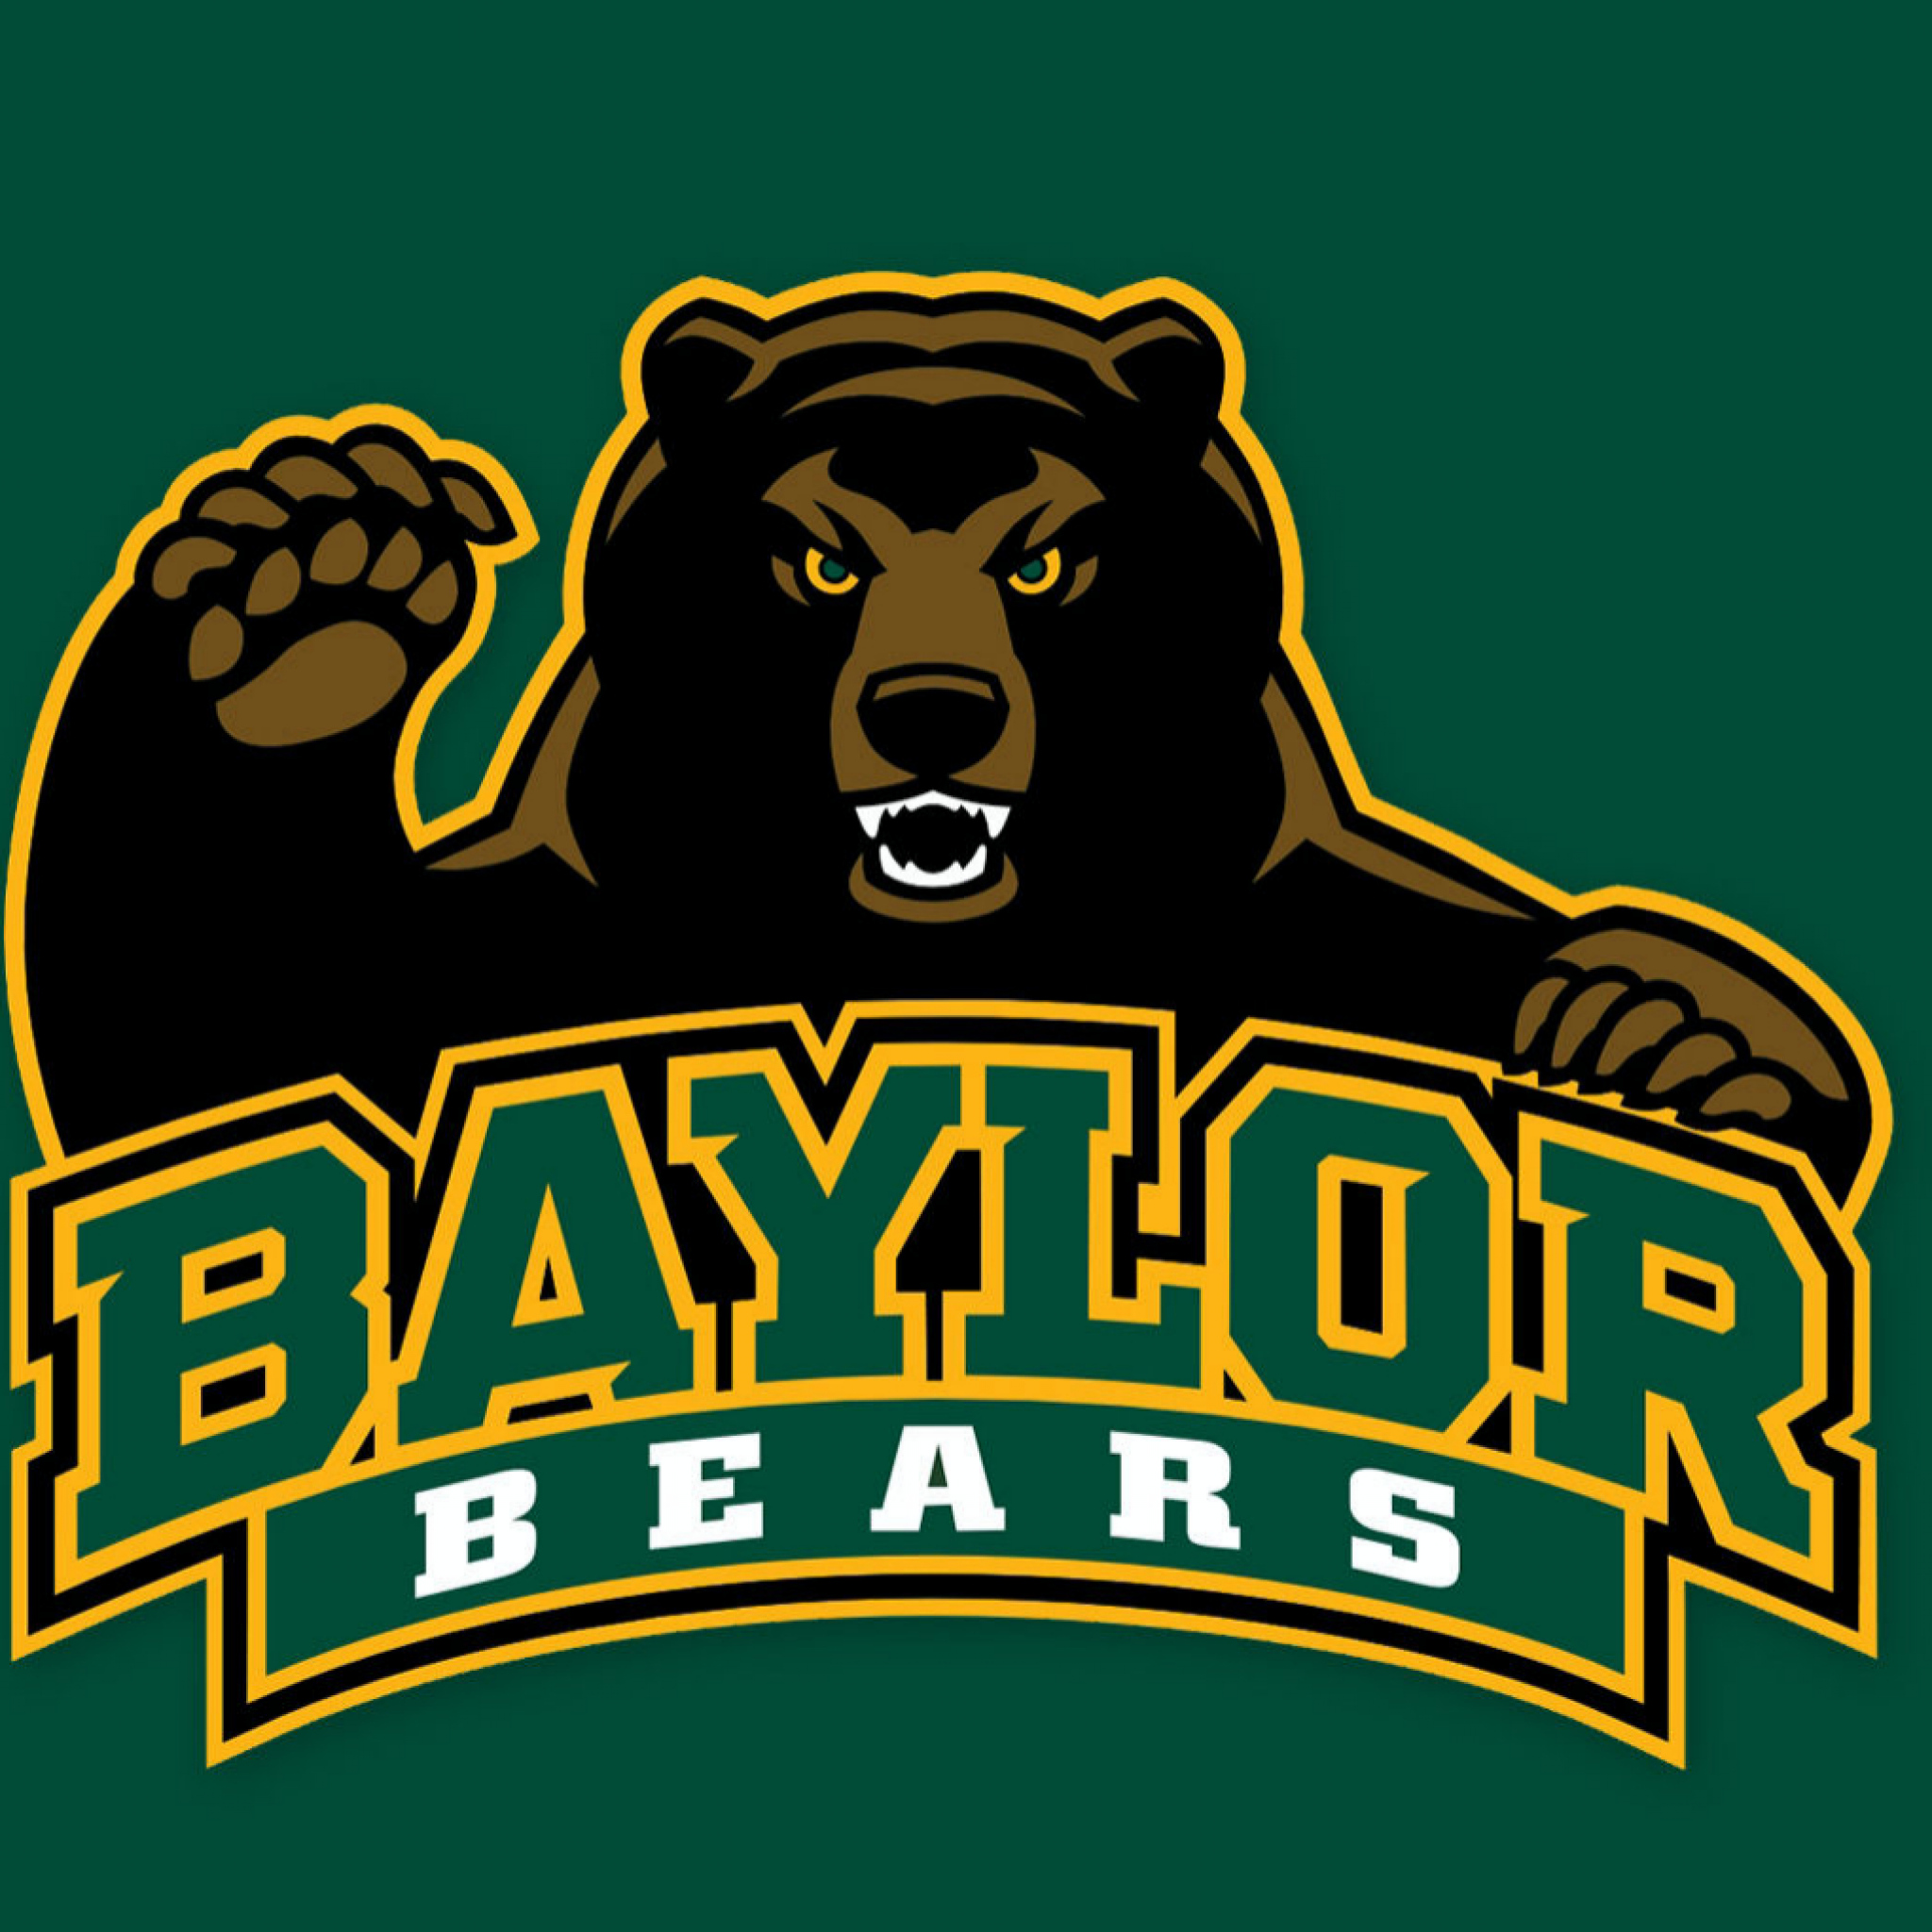 Download Wallpaper 2048x2048 Baylor university Baylor 2048x2048